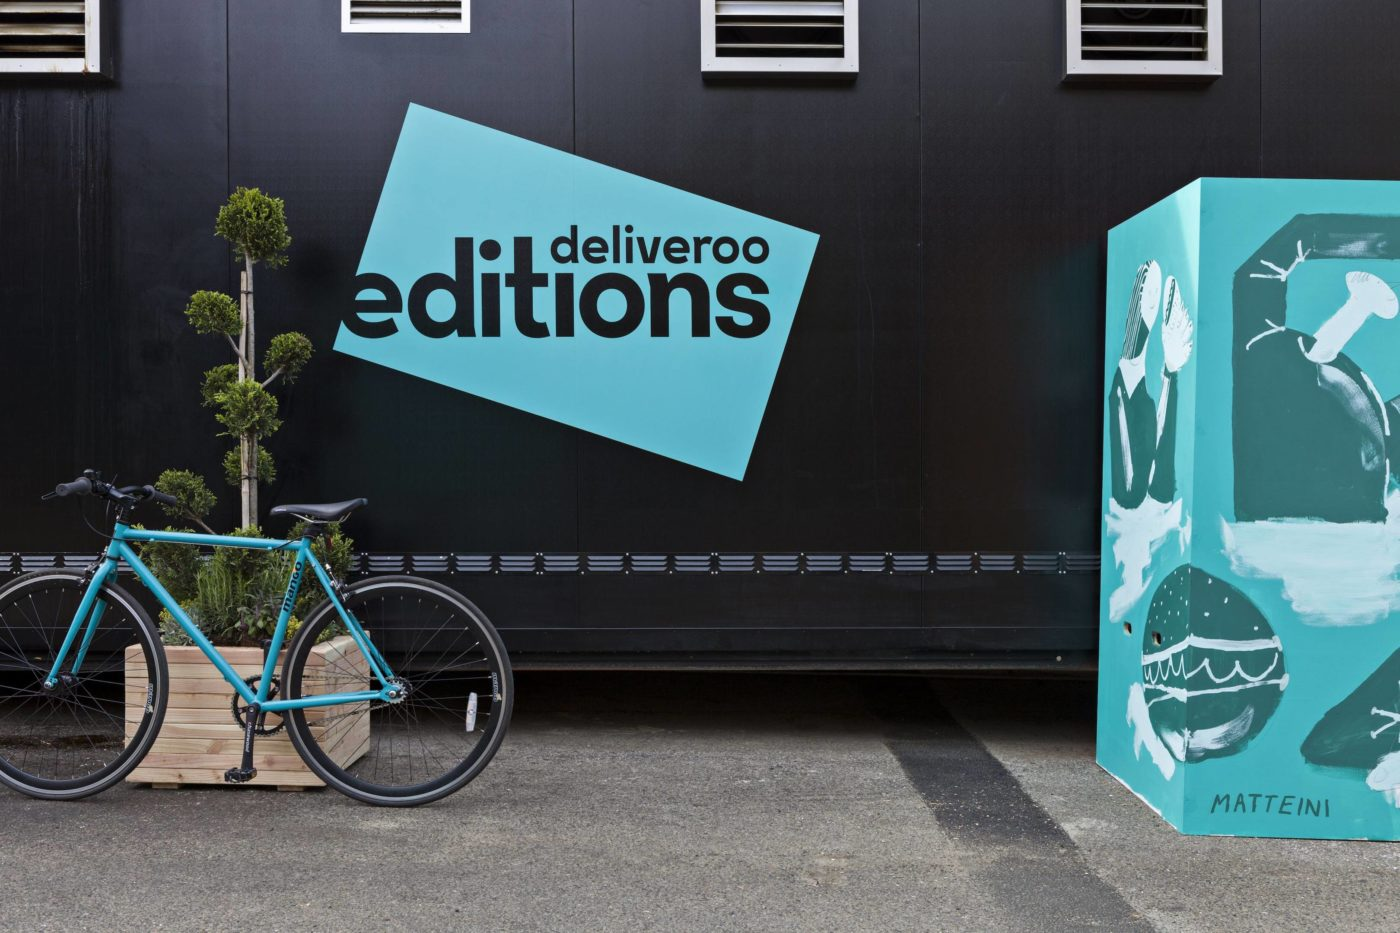 Image of a bicycle in front of a backdrop featuring the creative branding of the startup Deliveroo Editions